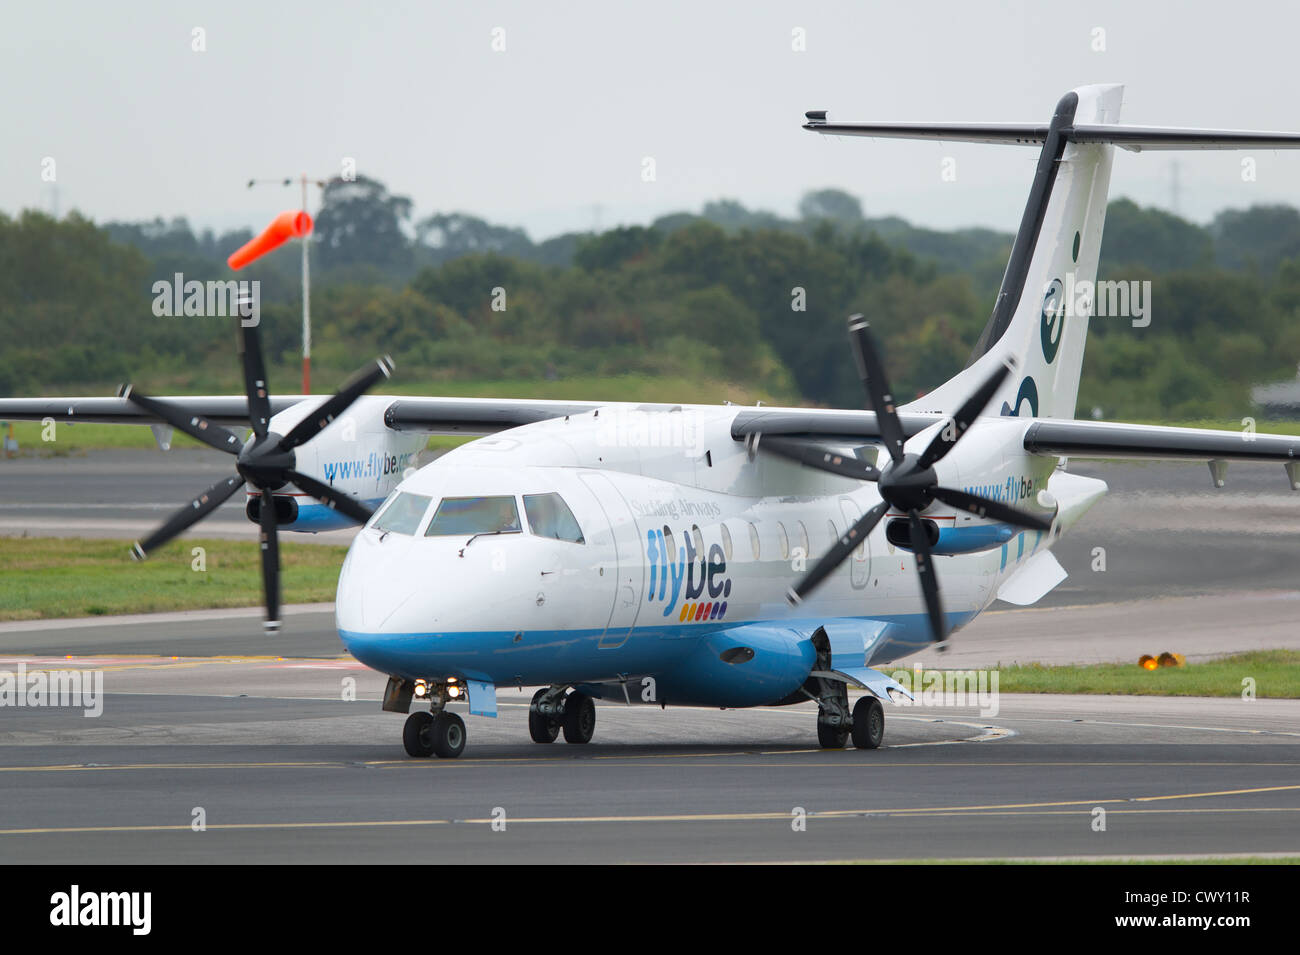 A Flybe Bombardier Dash 8 taxiing on the runway of Manchester International Airport (Editorial use only) - Stock Image